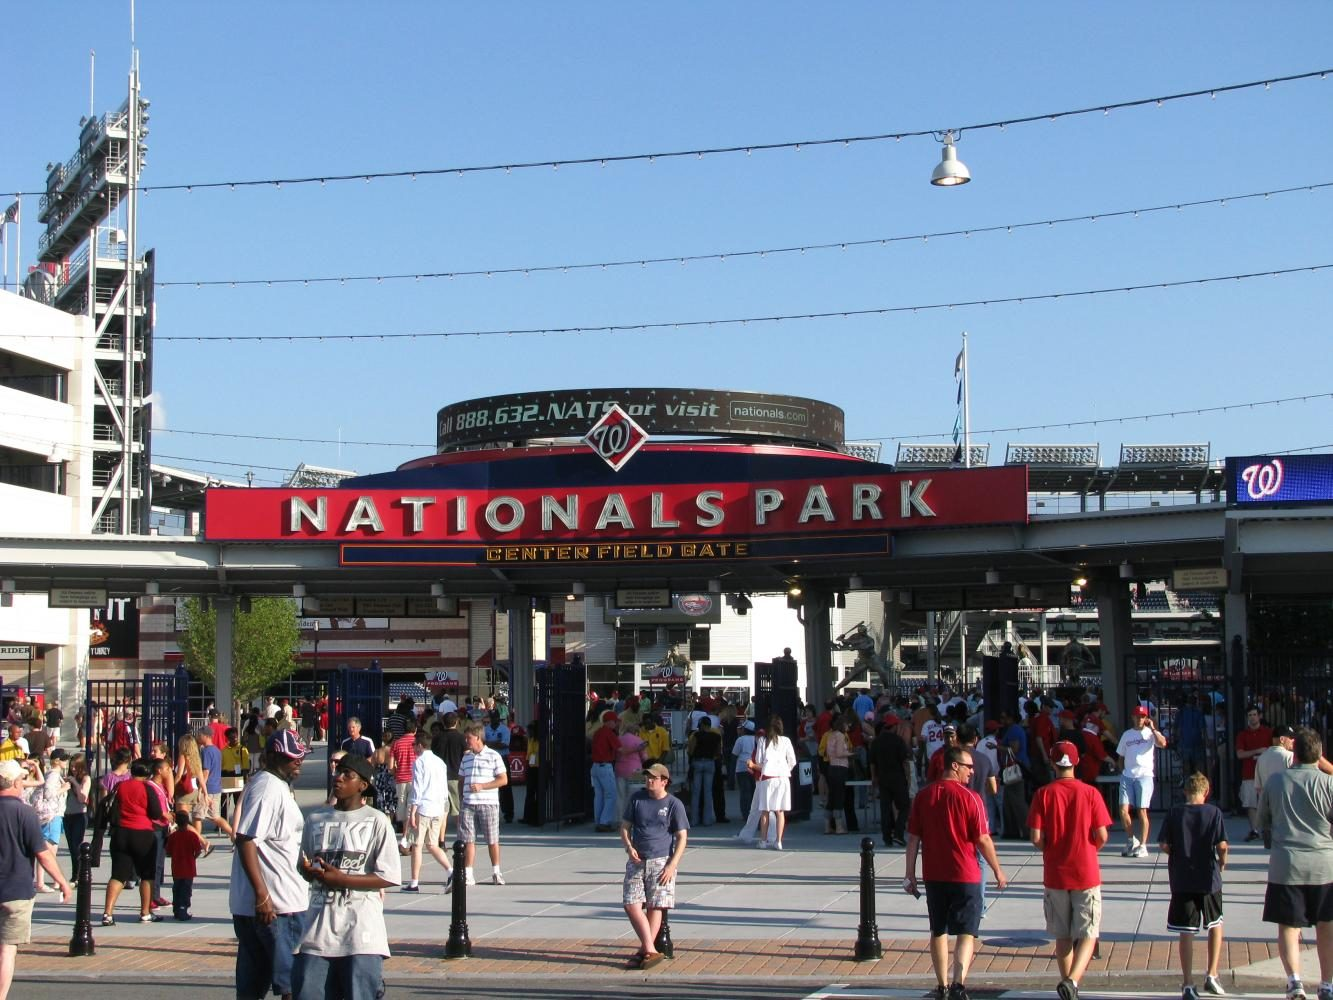 Nats+Park+is+the+place+to+be+this+summer+%21+